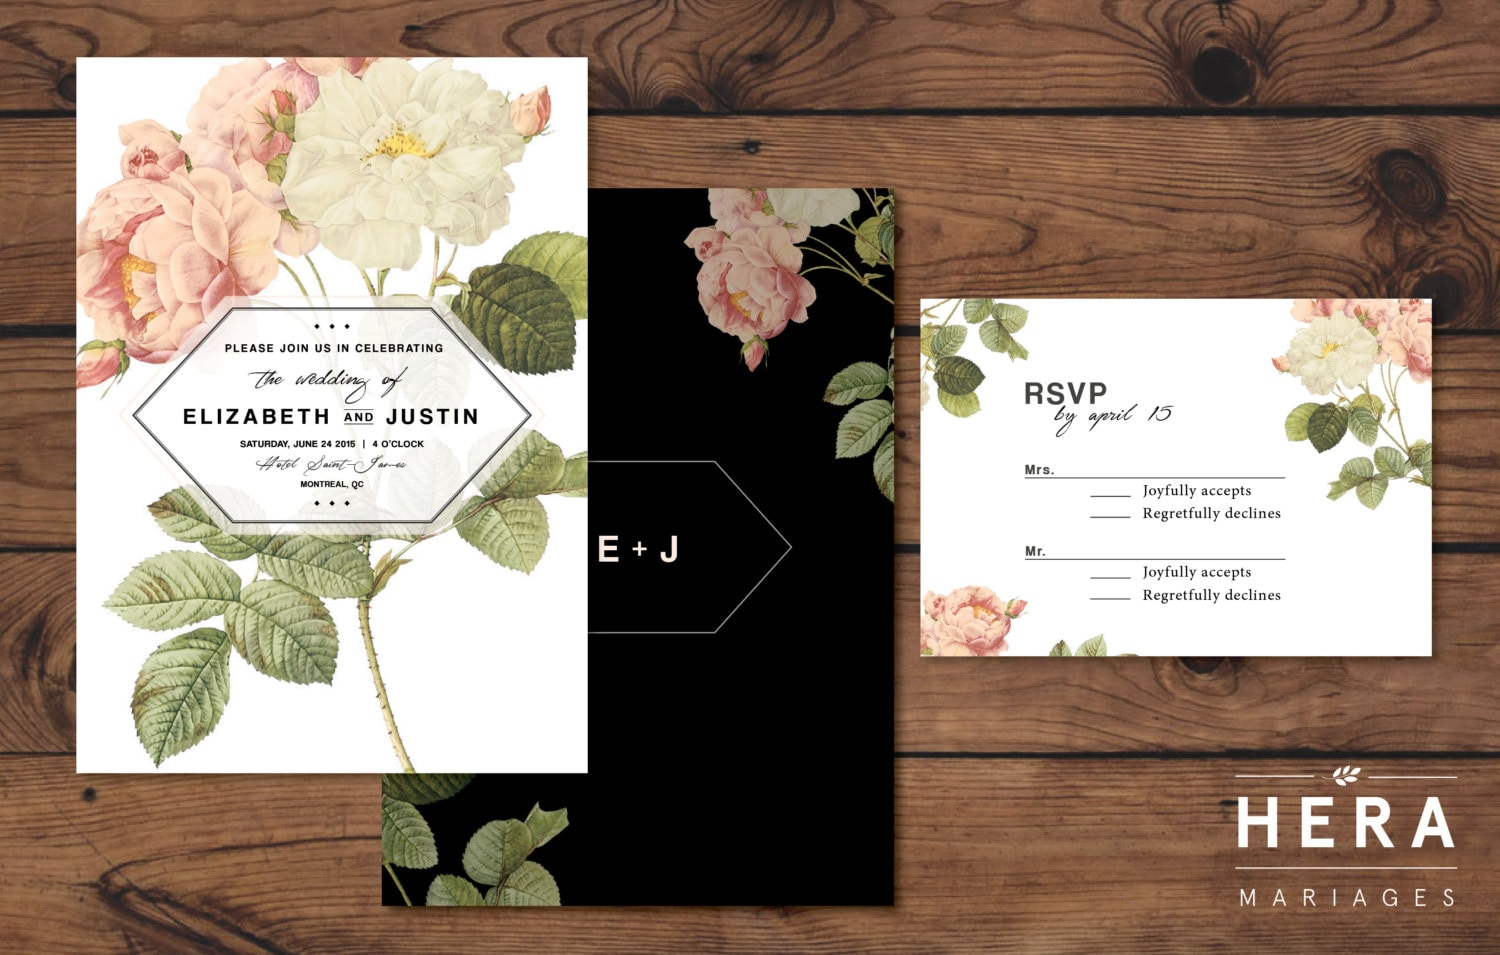 Printable Wedding Invitation Sets: Printable Wedding Invitation Set Wedding Invitation RSVP